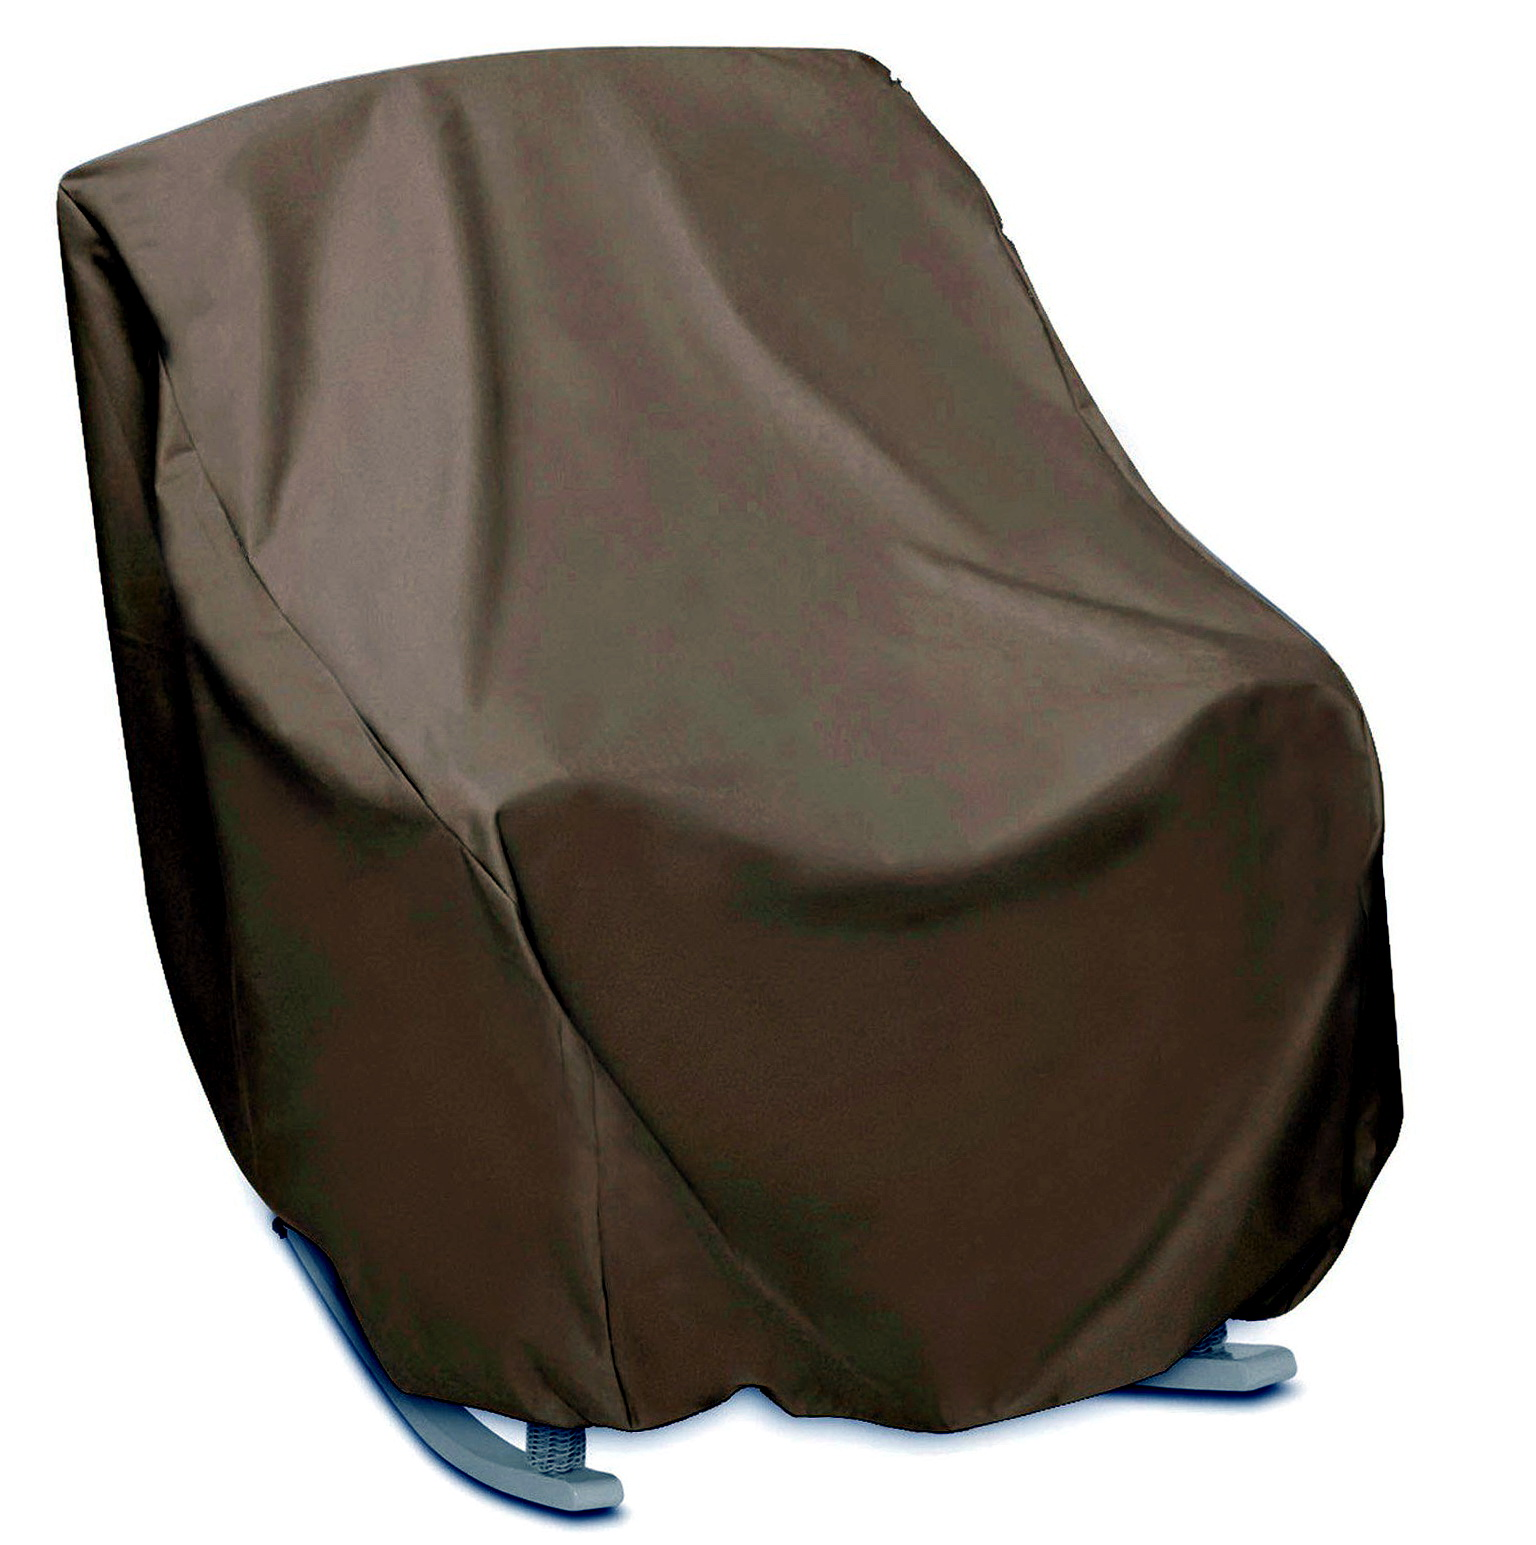 Patio Furniture Cushions Covers